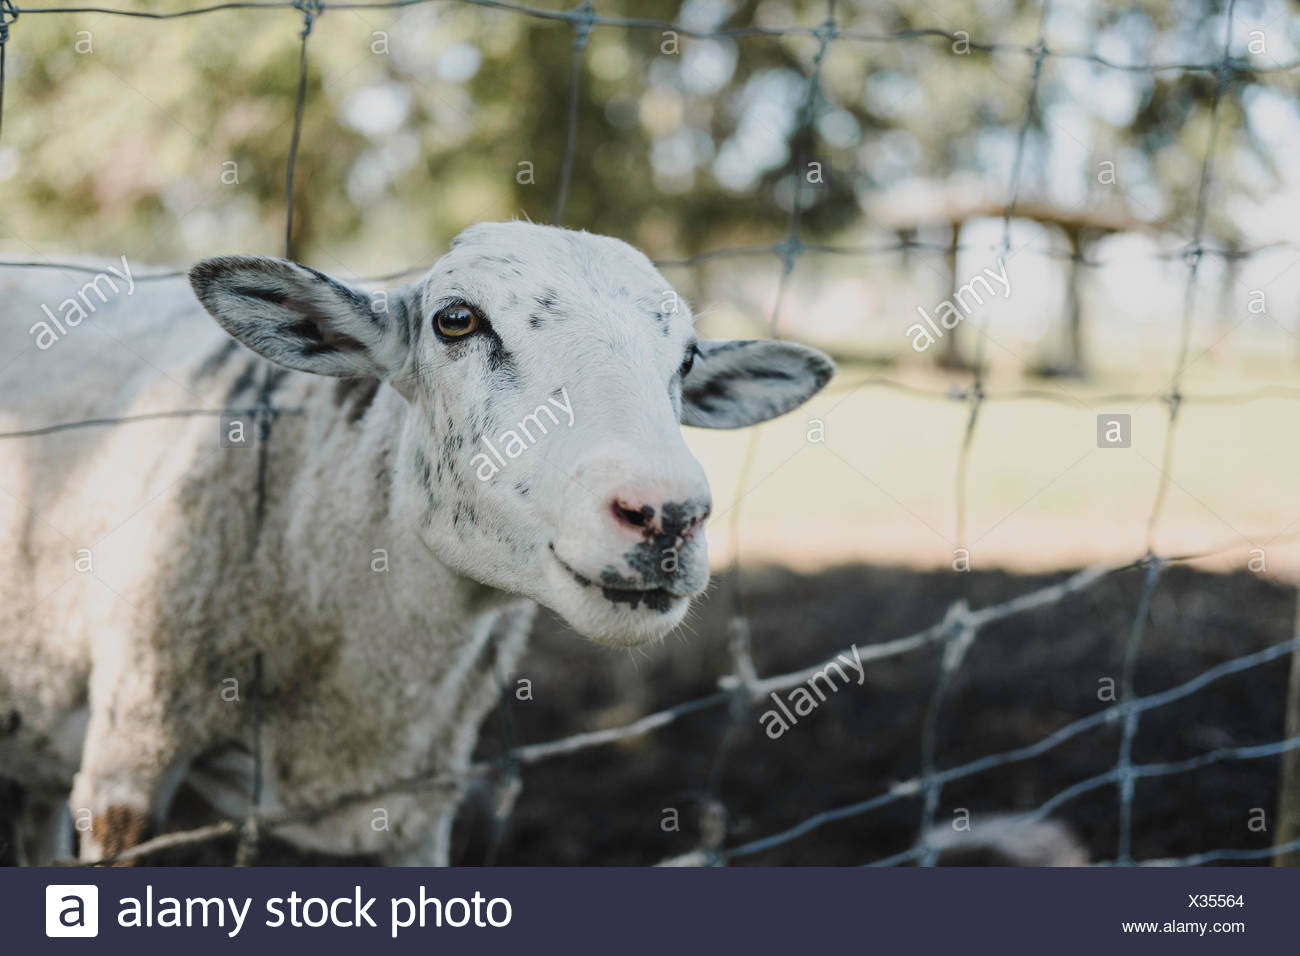 Portrait of sheep looking out from wire fence - Stock Image